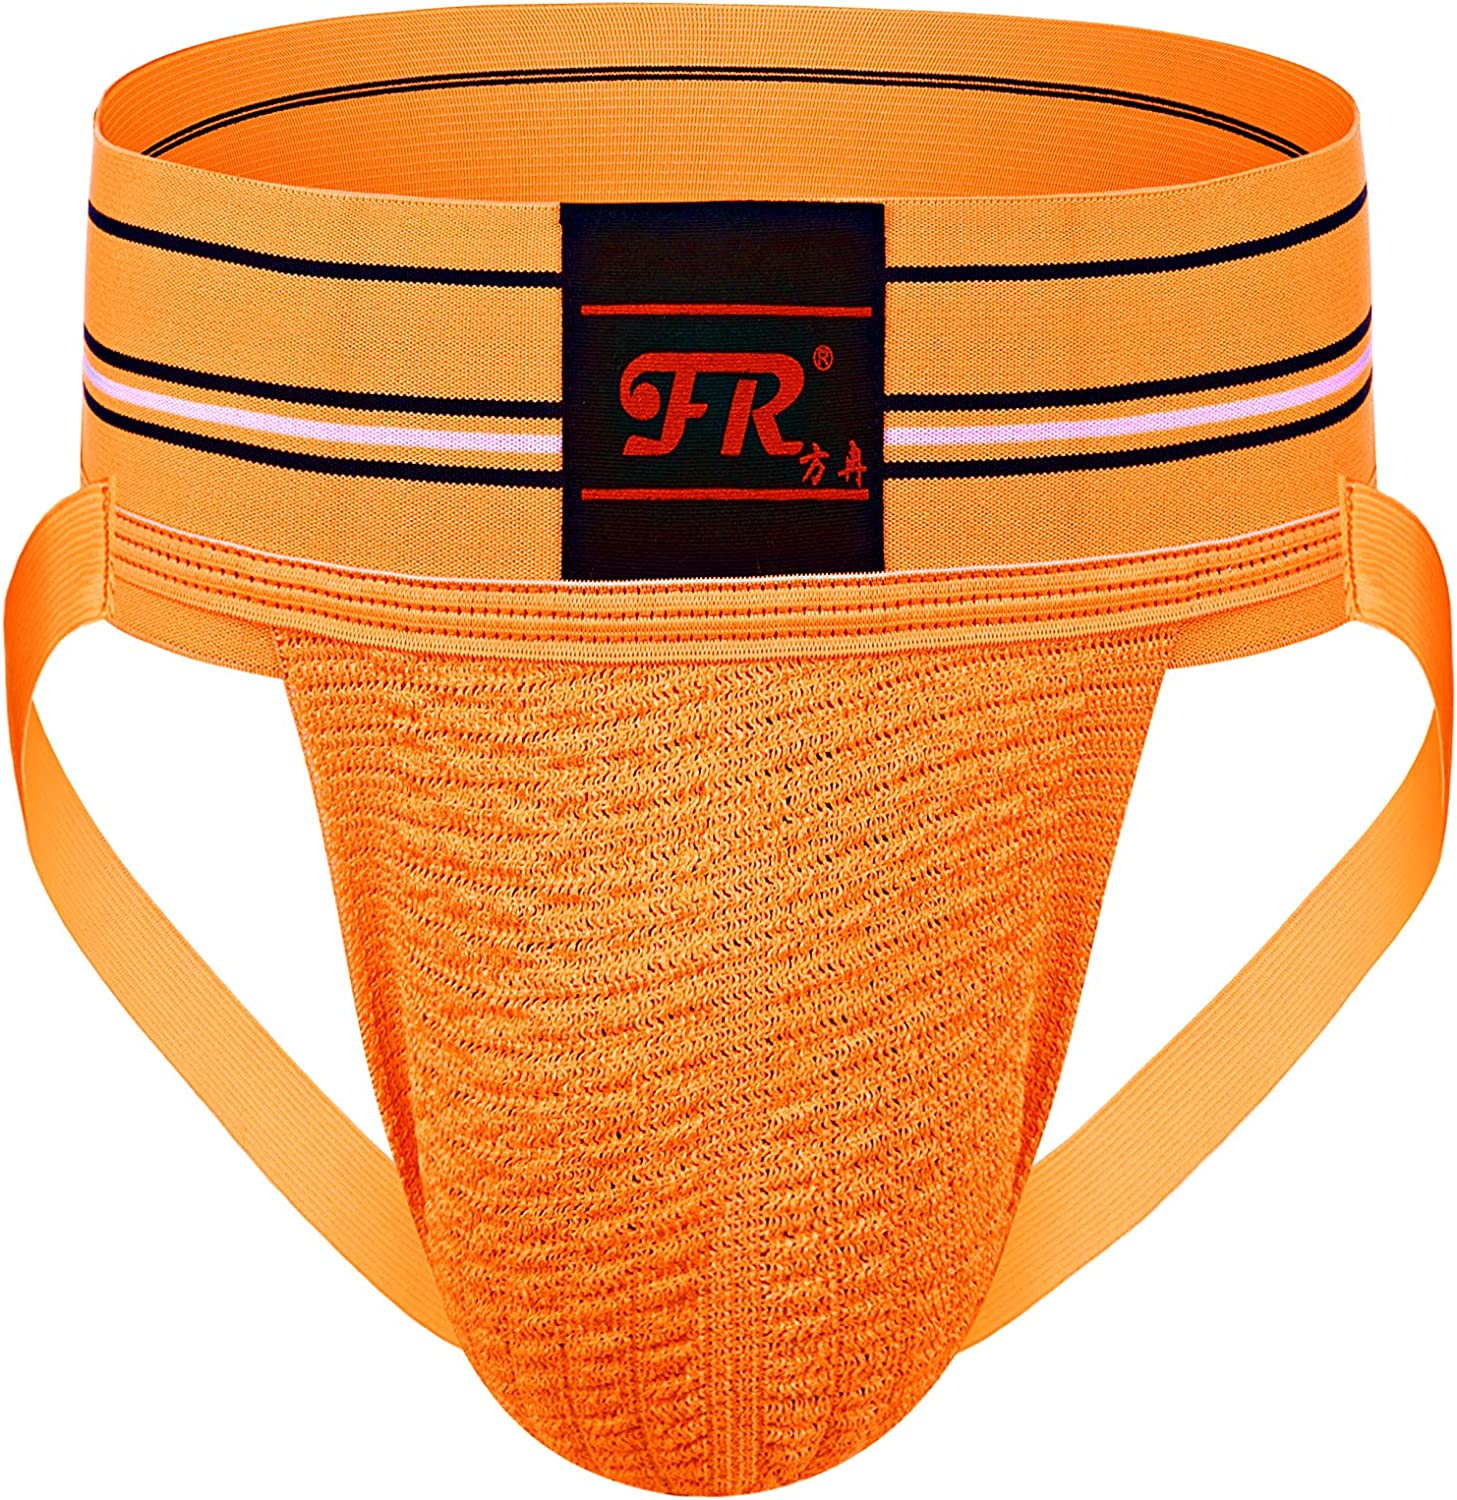 F plus R Mens Athletic Supporter Jockstrap With 3 Inch Wide Waistband